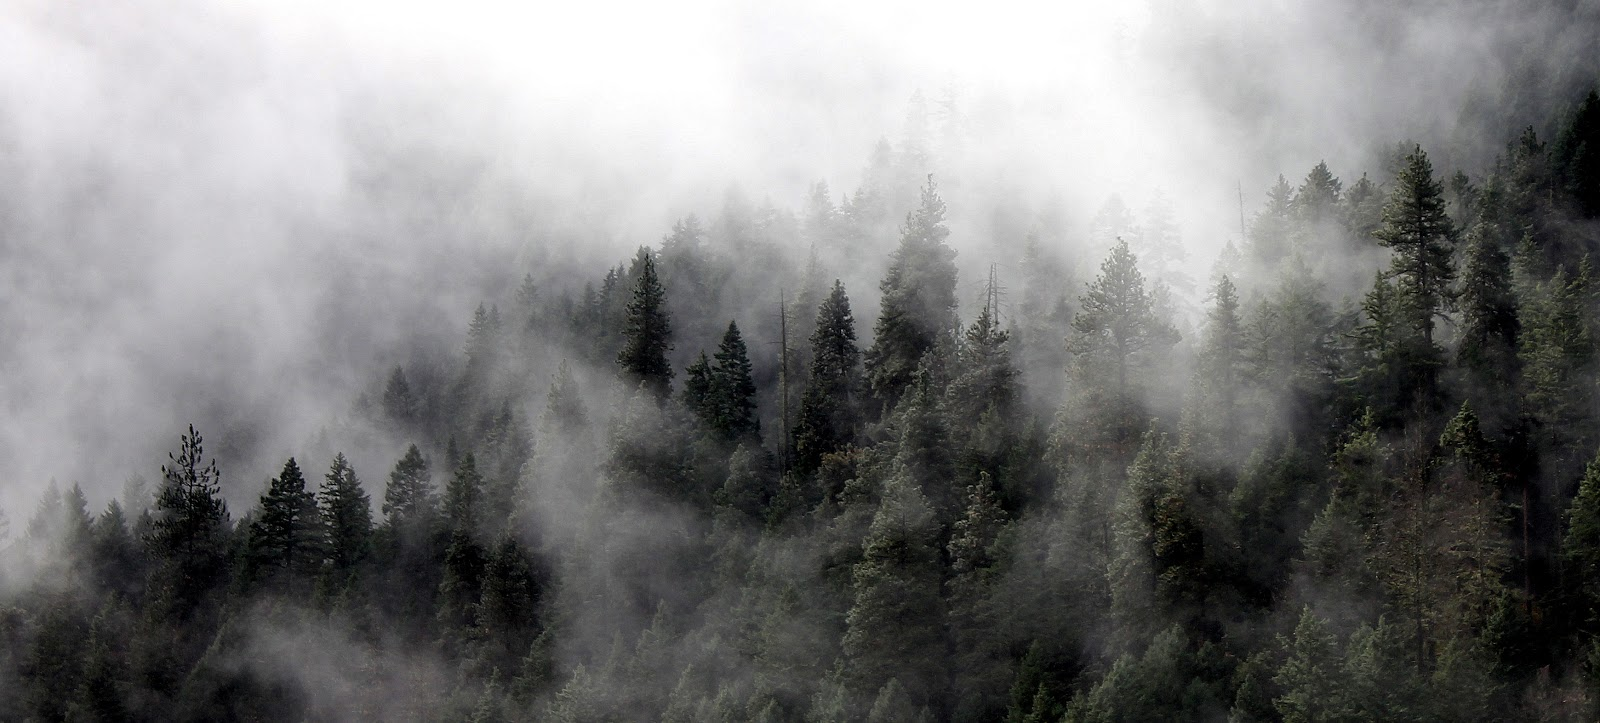 The Tree from the Forest: FIRE, SMOKE, VAPORS, AND CLOUDS